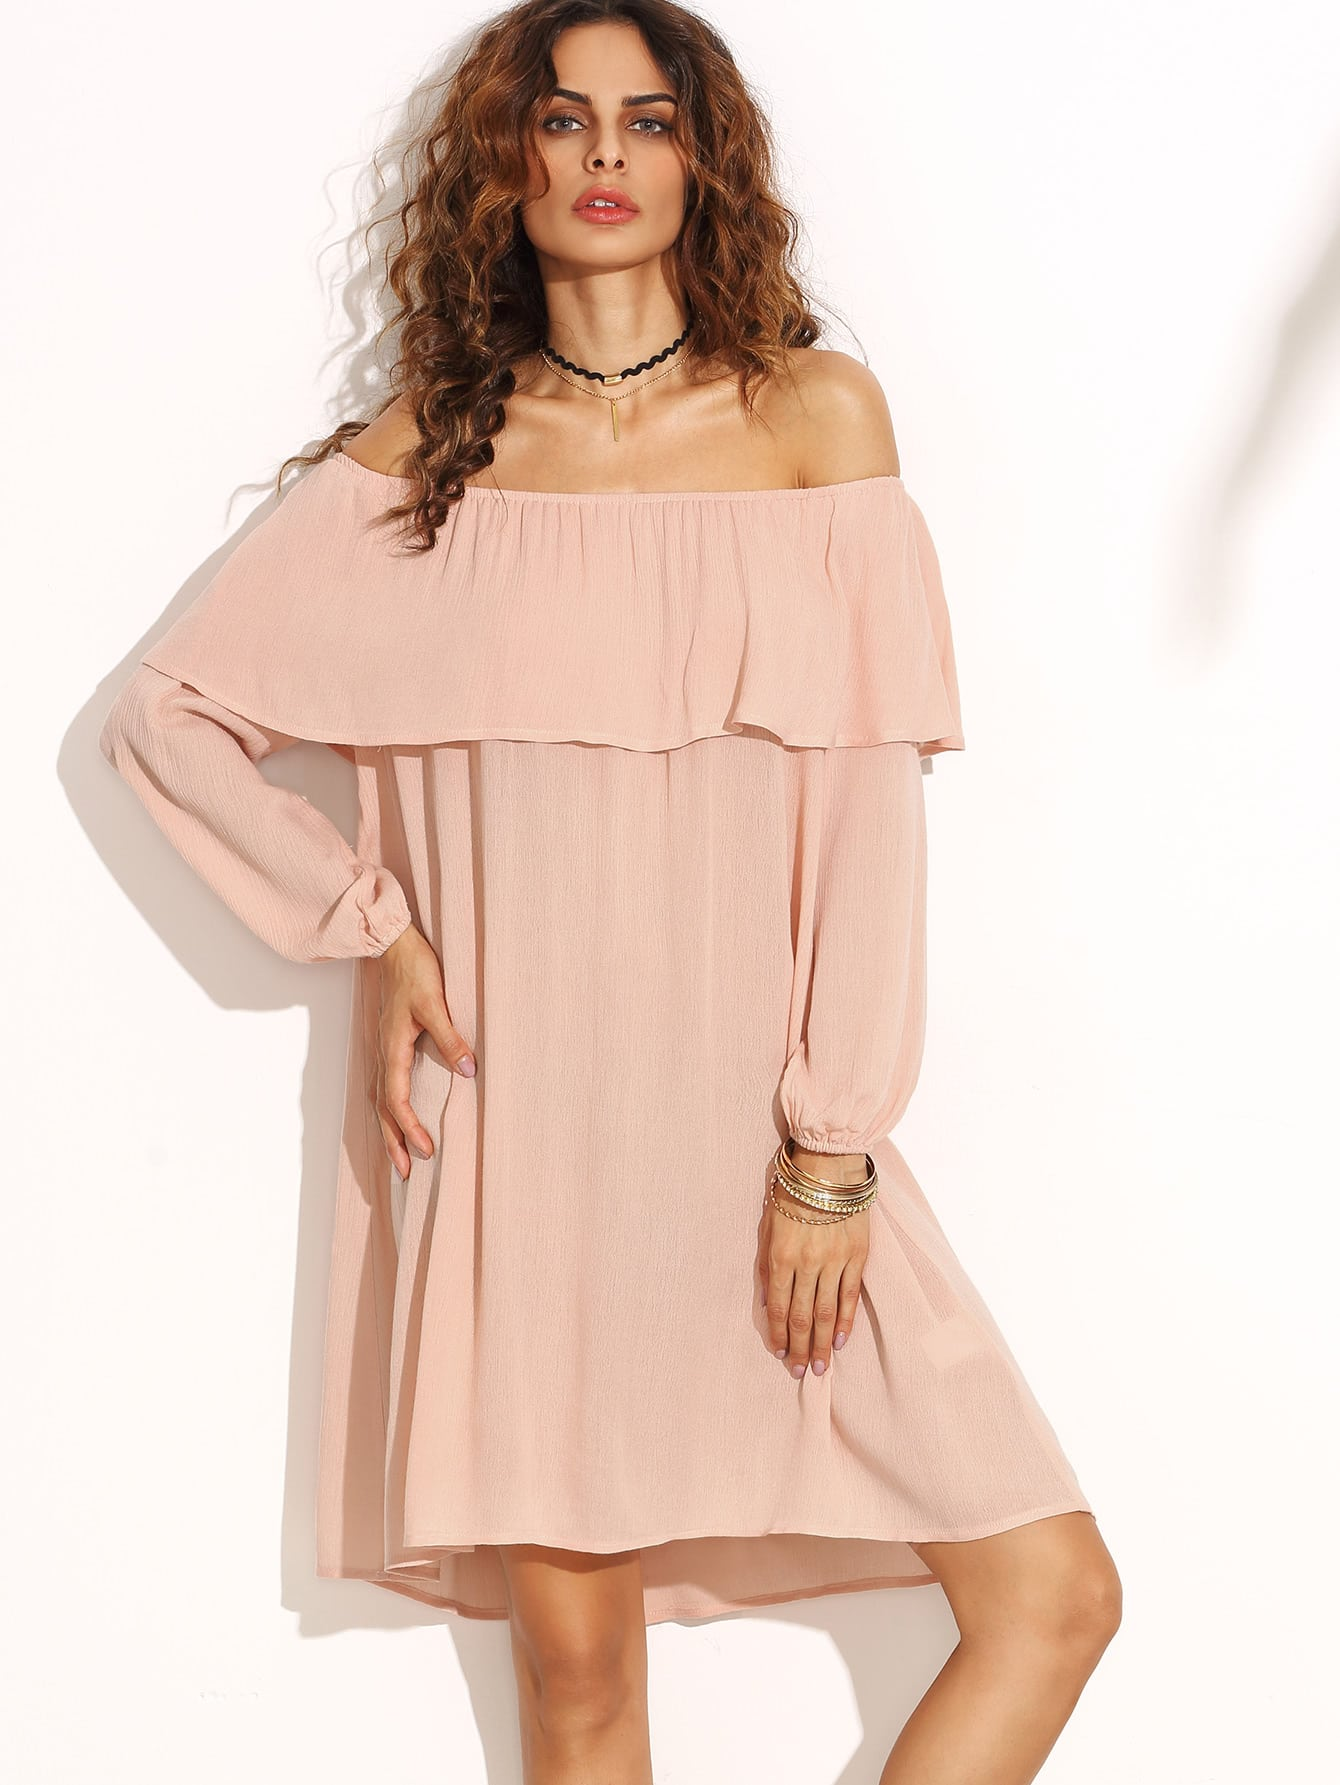 Pink Ruffle Off The Shoulder Swing DressPink Ruffle Off The Shoulder Swing Dress<br><br>color: Pink<br>size: L,M,S,XS